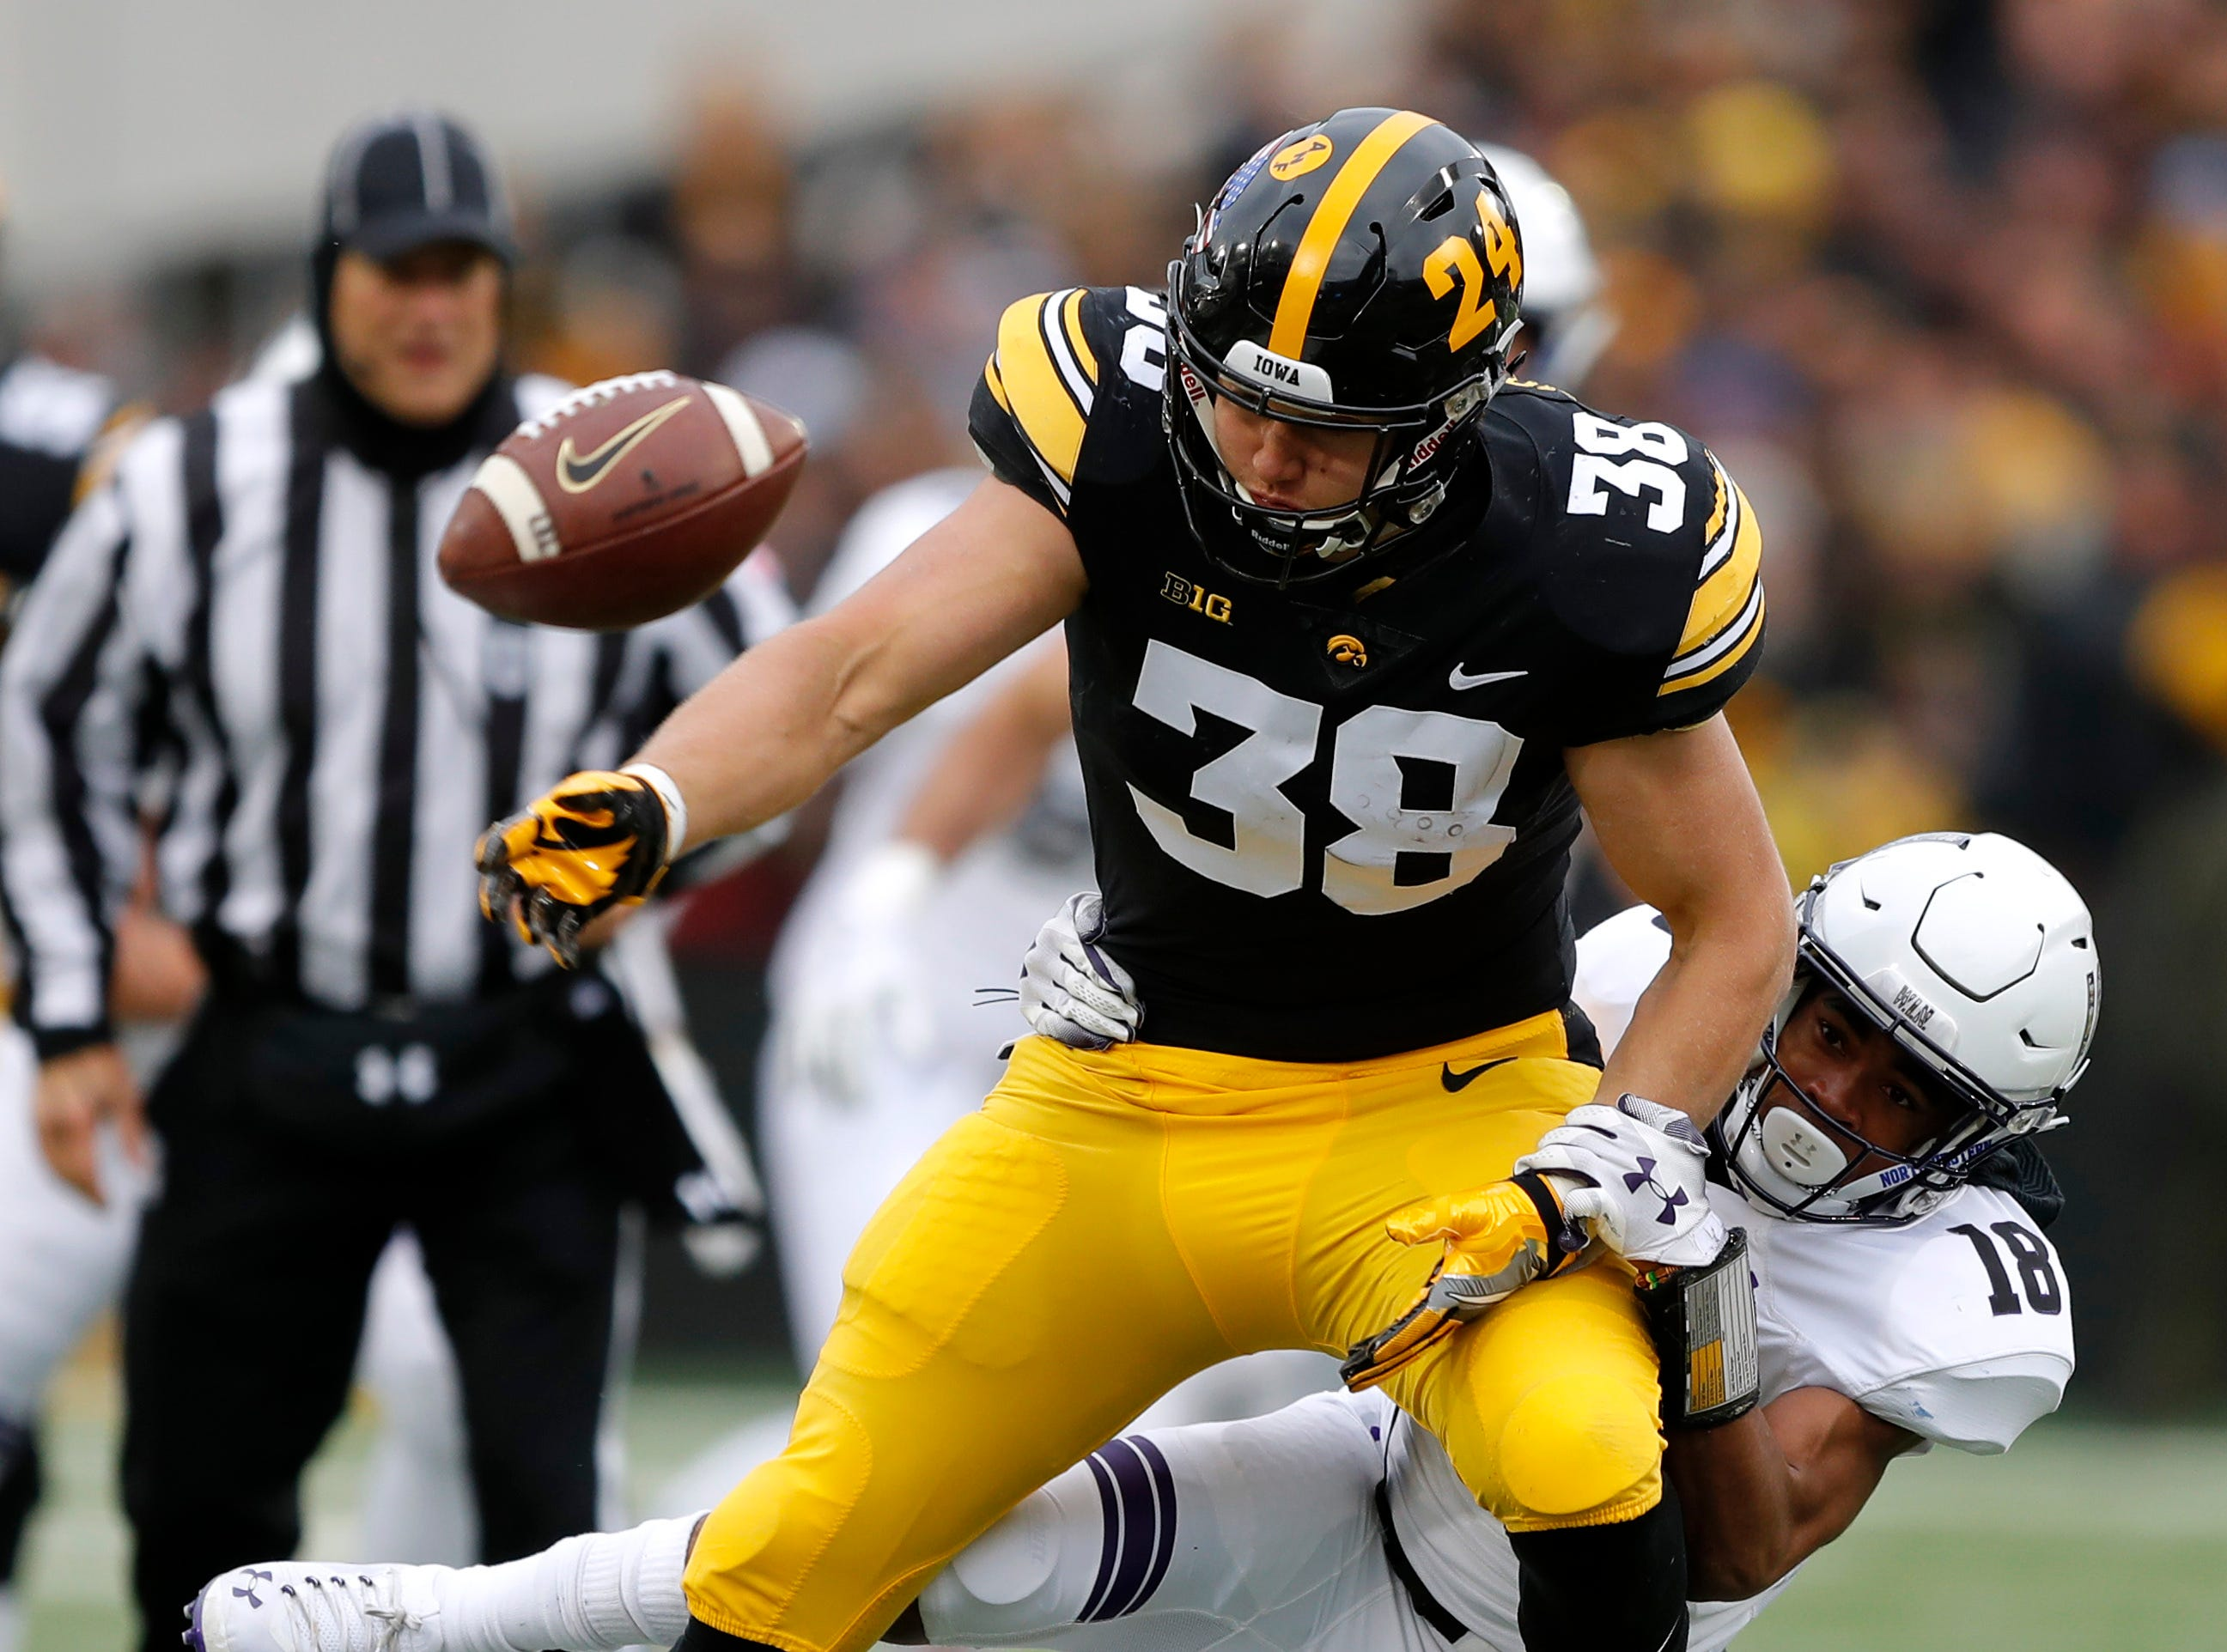 Northwestern defensive back Cameron Ruiz (18) breaks up a pass intended for Iowa tight end T.J. Hockenson (38) during the first half of an NCAA college football game, Saturday, Nov. 10, 2018, in Iowa City, Iowa. (AP Photo/Charlie Neibergall)